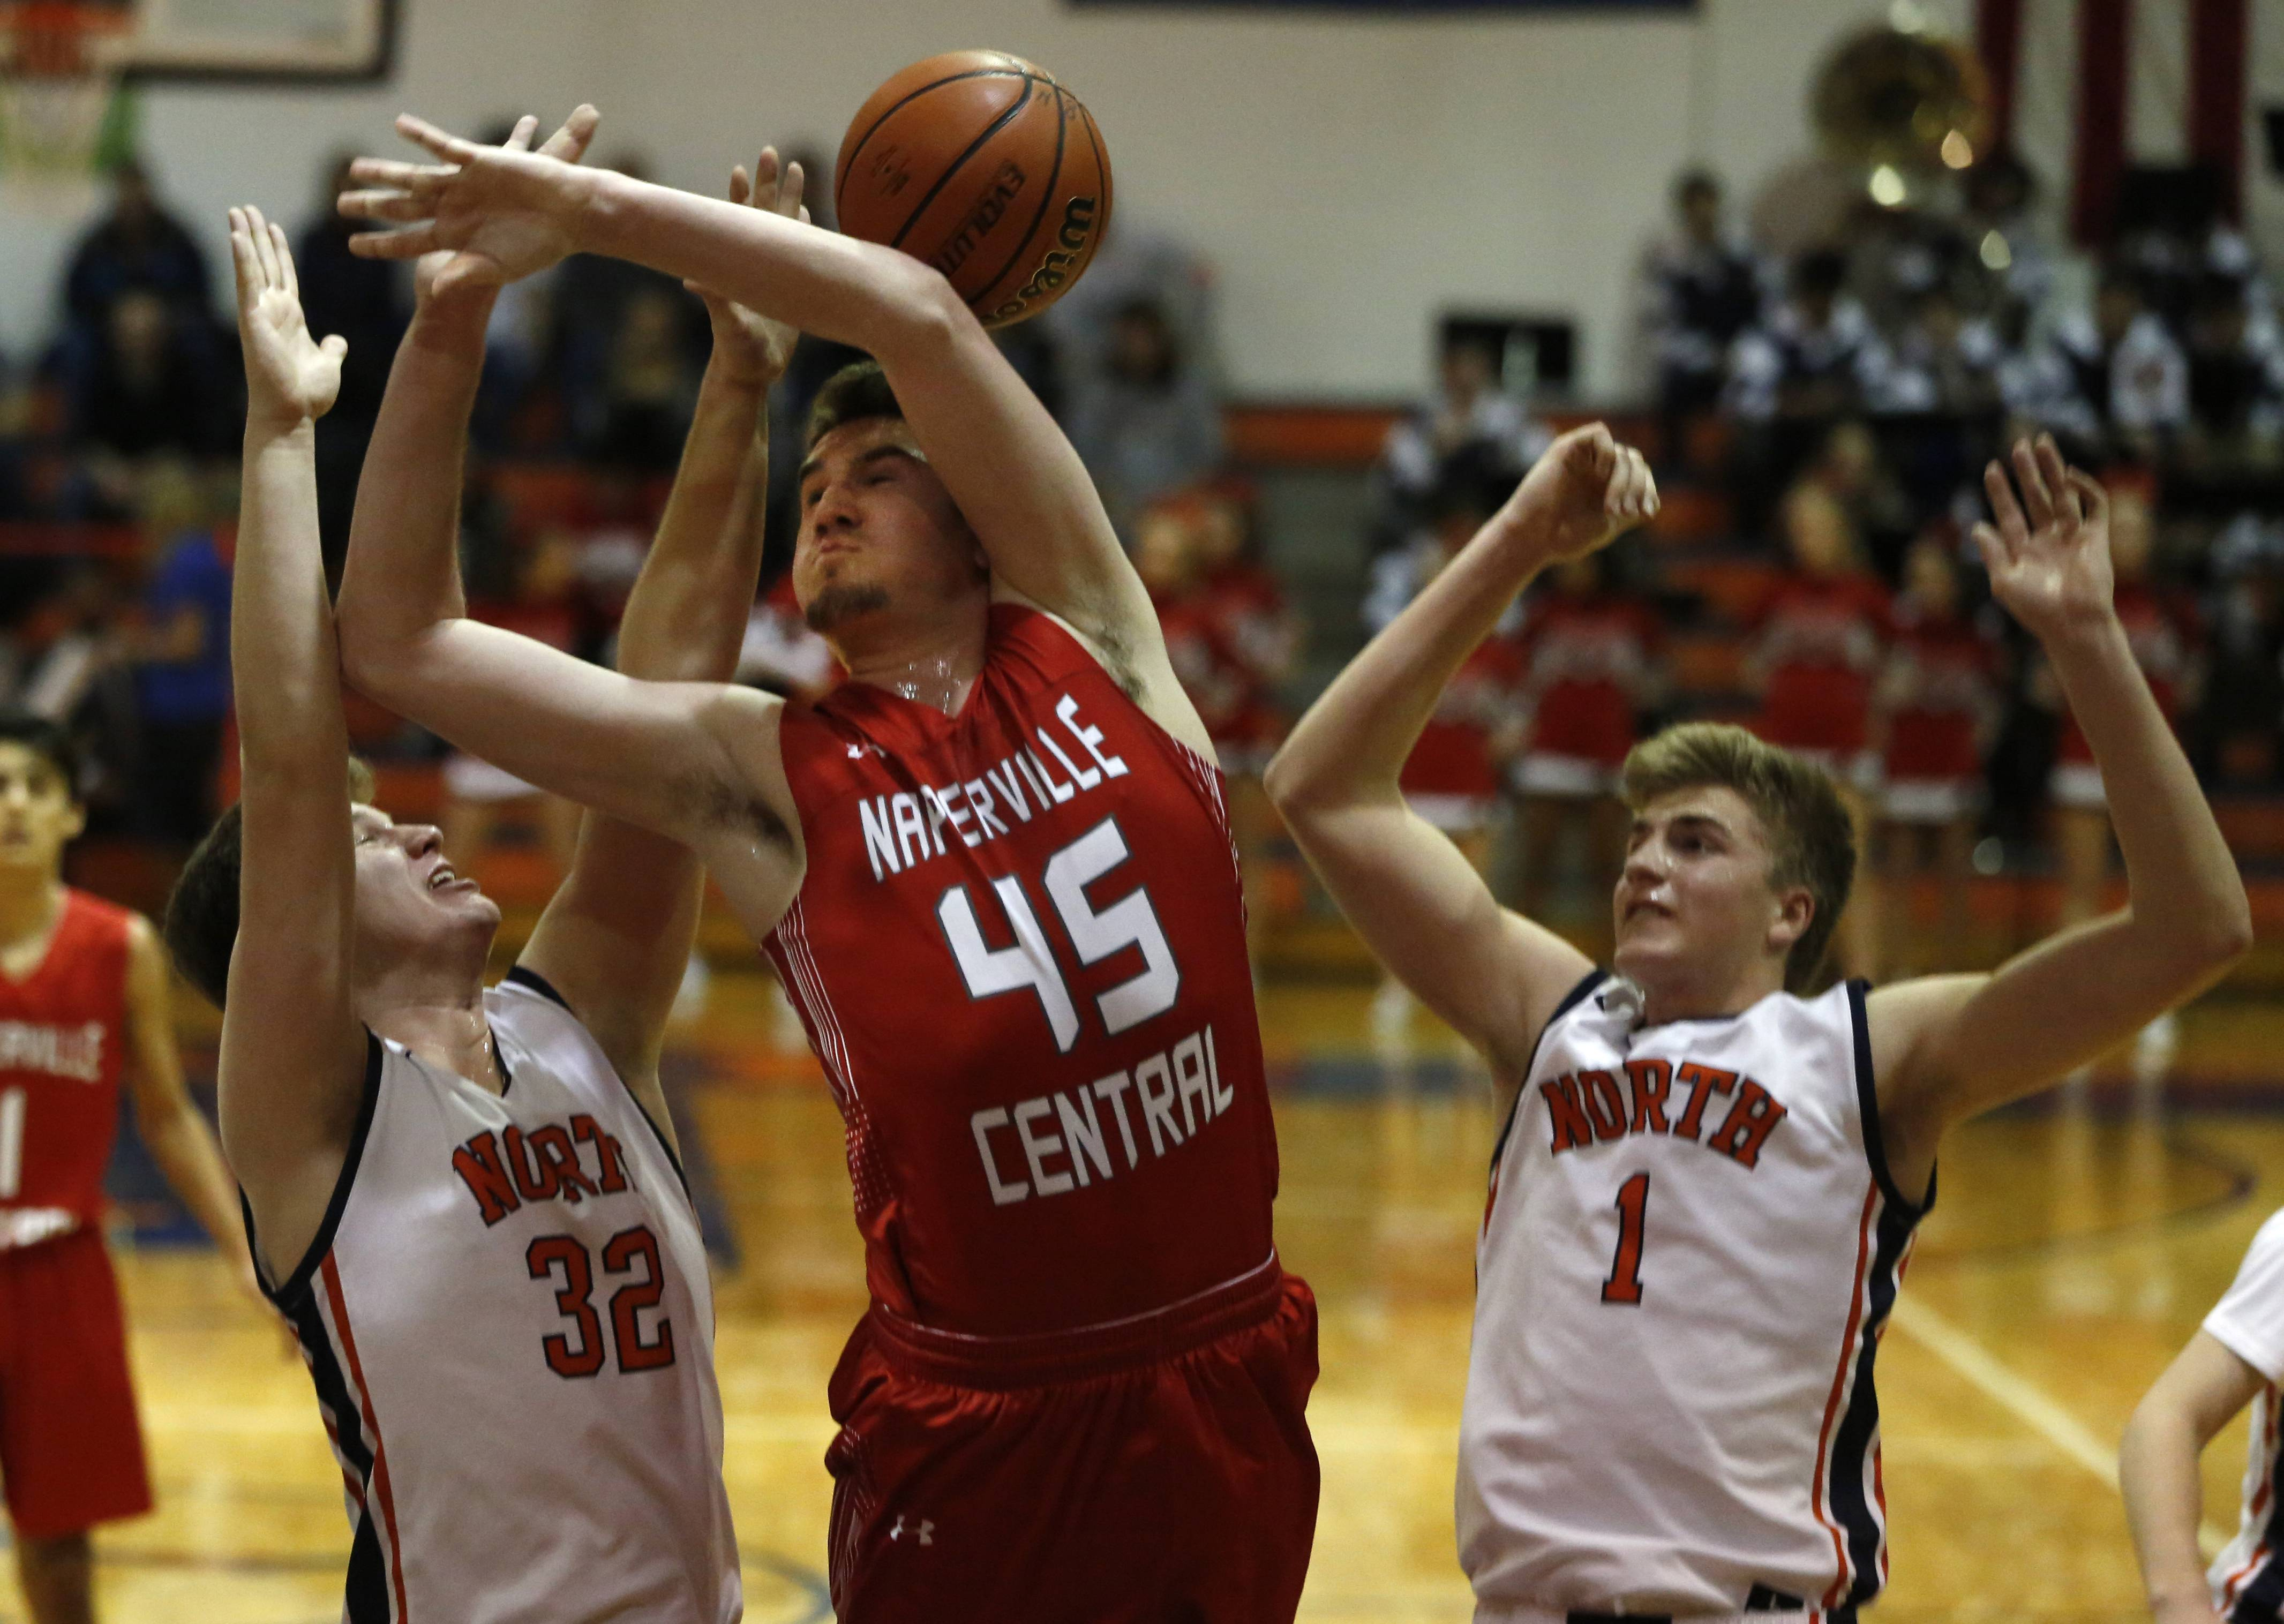 Naperville Central's Benjamin Wolf (45) battles Naperville North's Chris Johnson (32) and Tom Welch (1) during boys basketball action in Naperville.